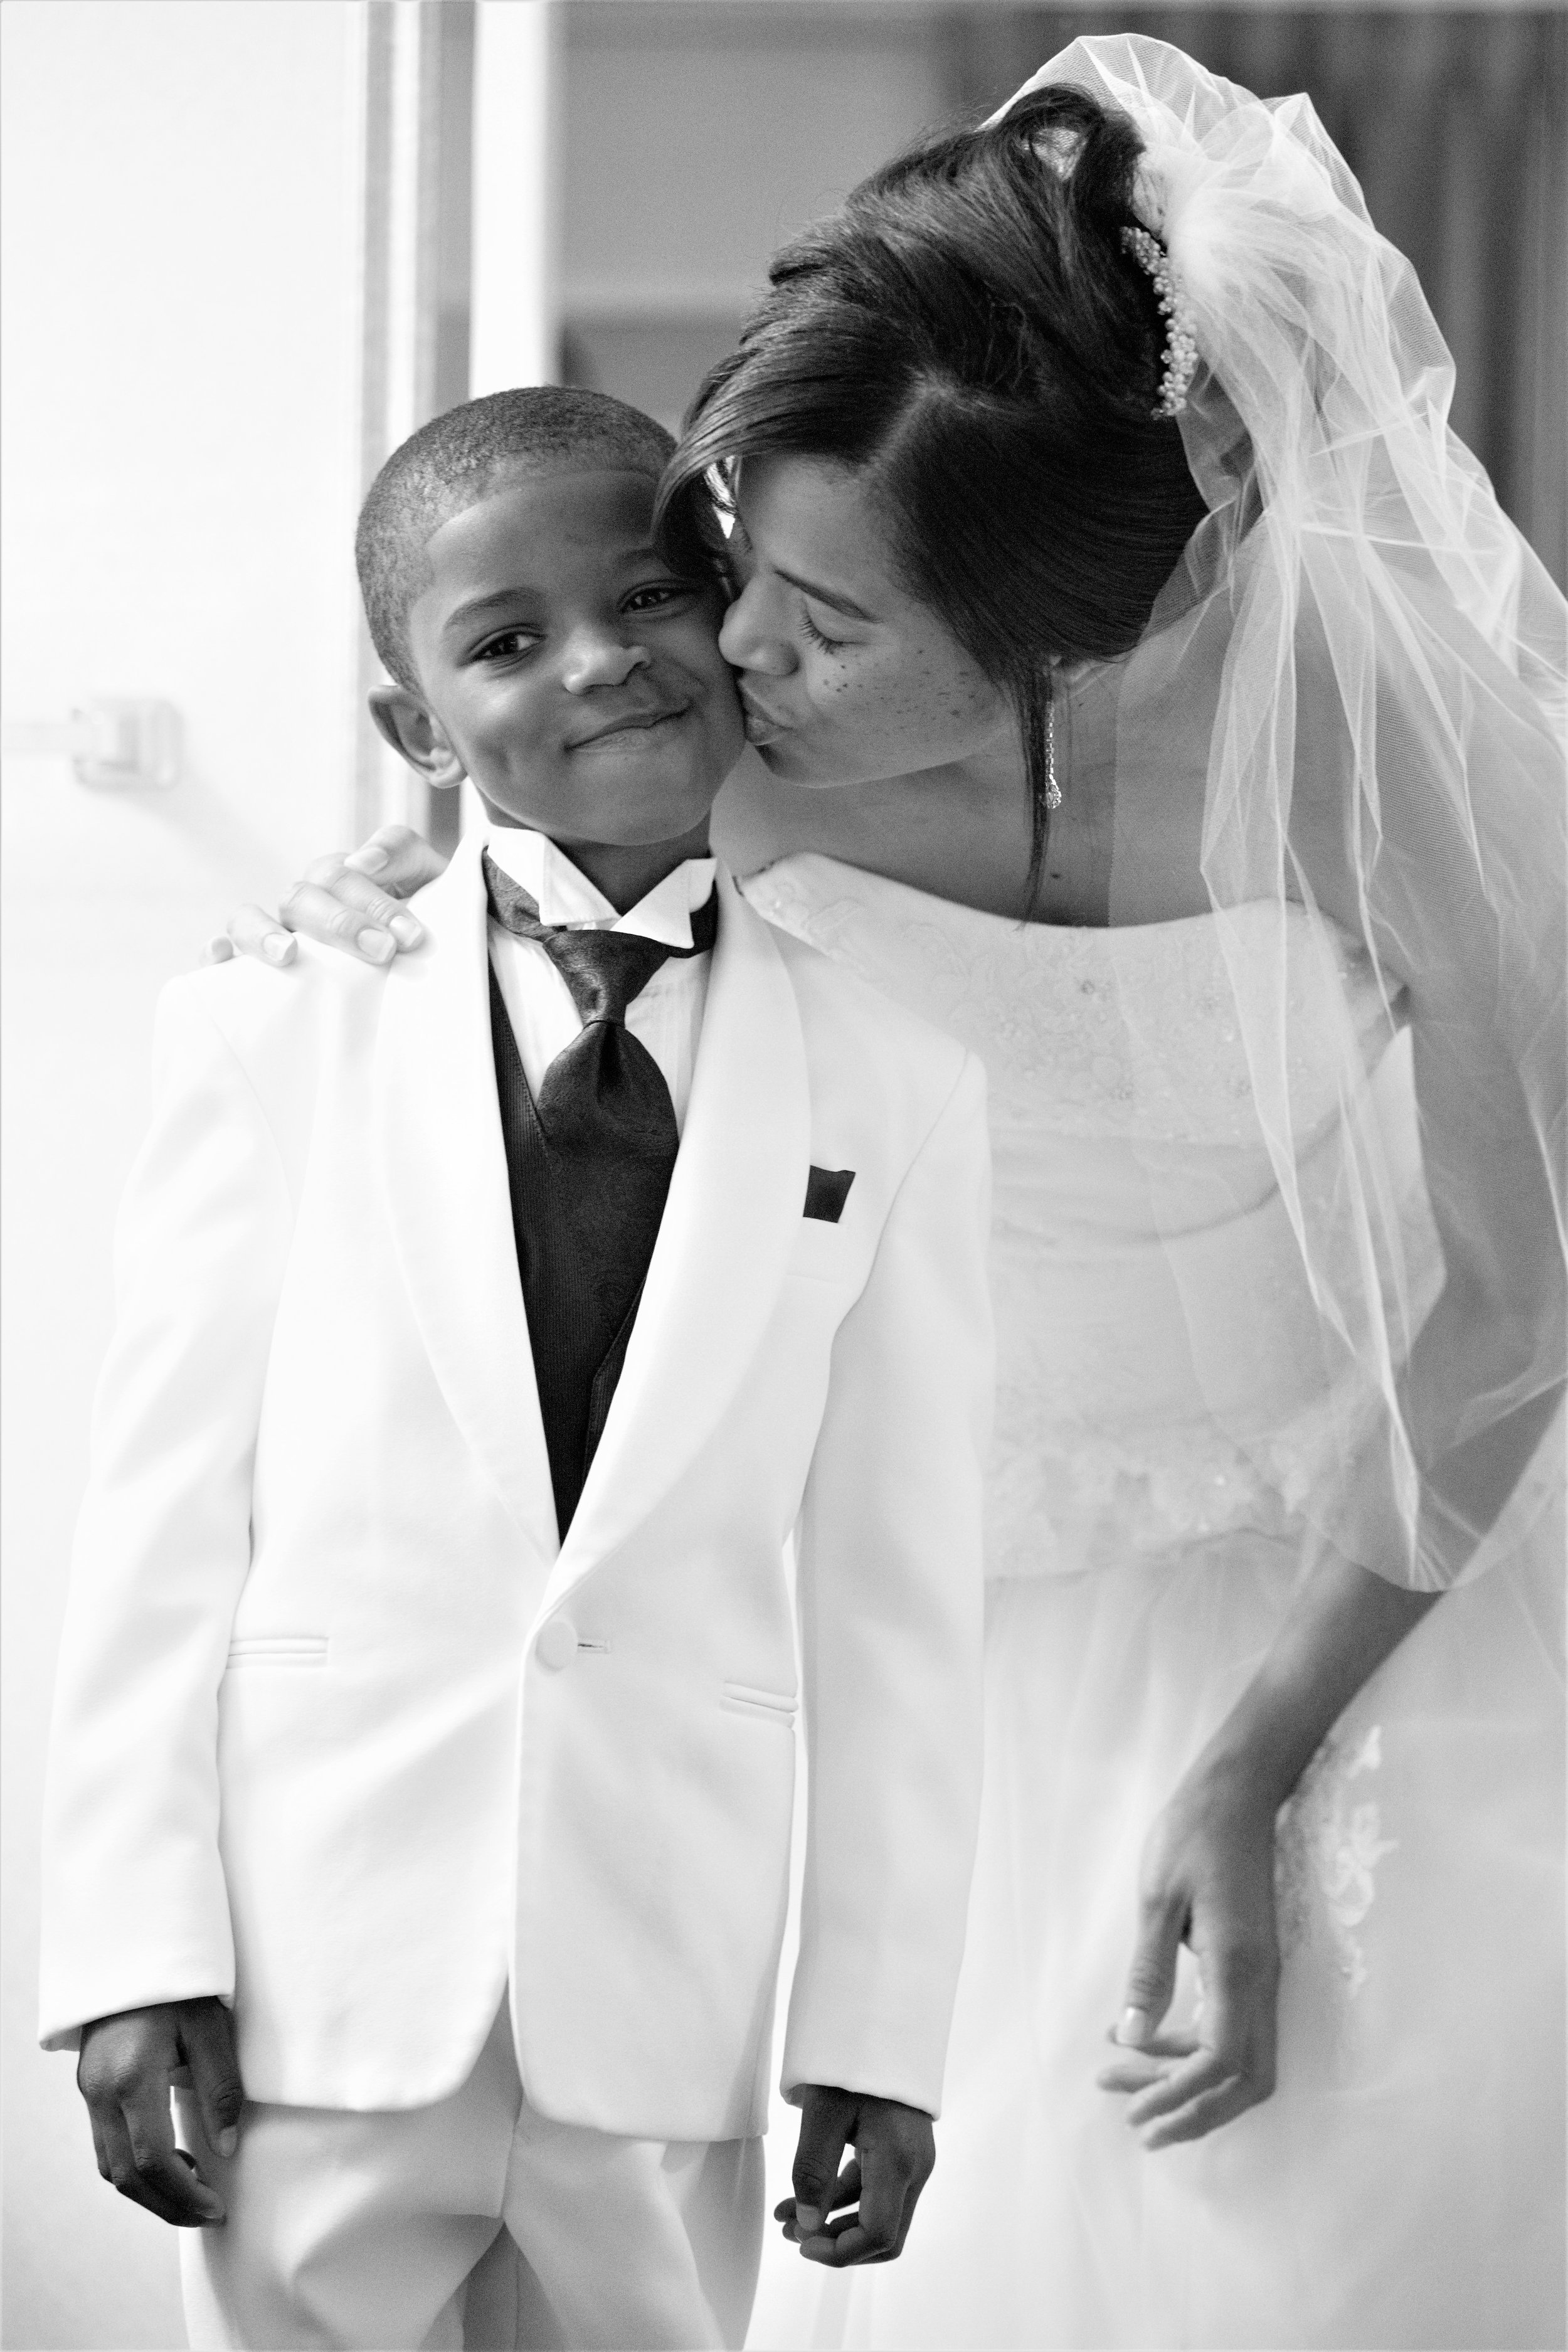 5-24-14_Errol Ebanks_The Finney Wedding_0125_copy.jpg